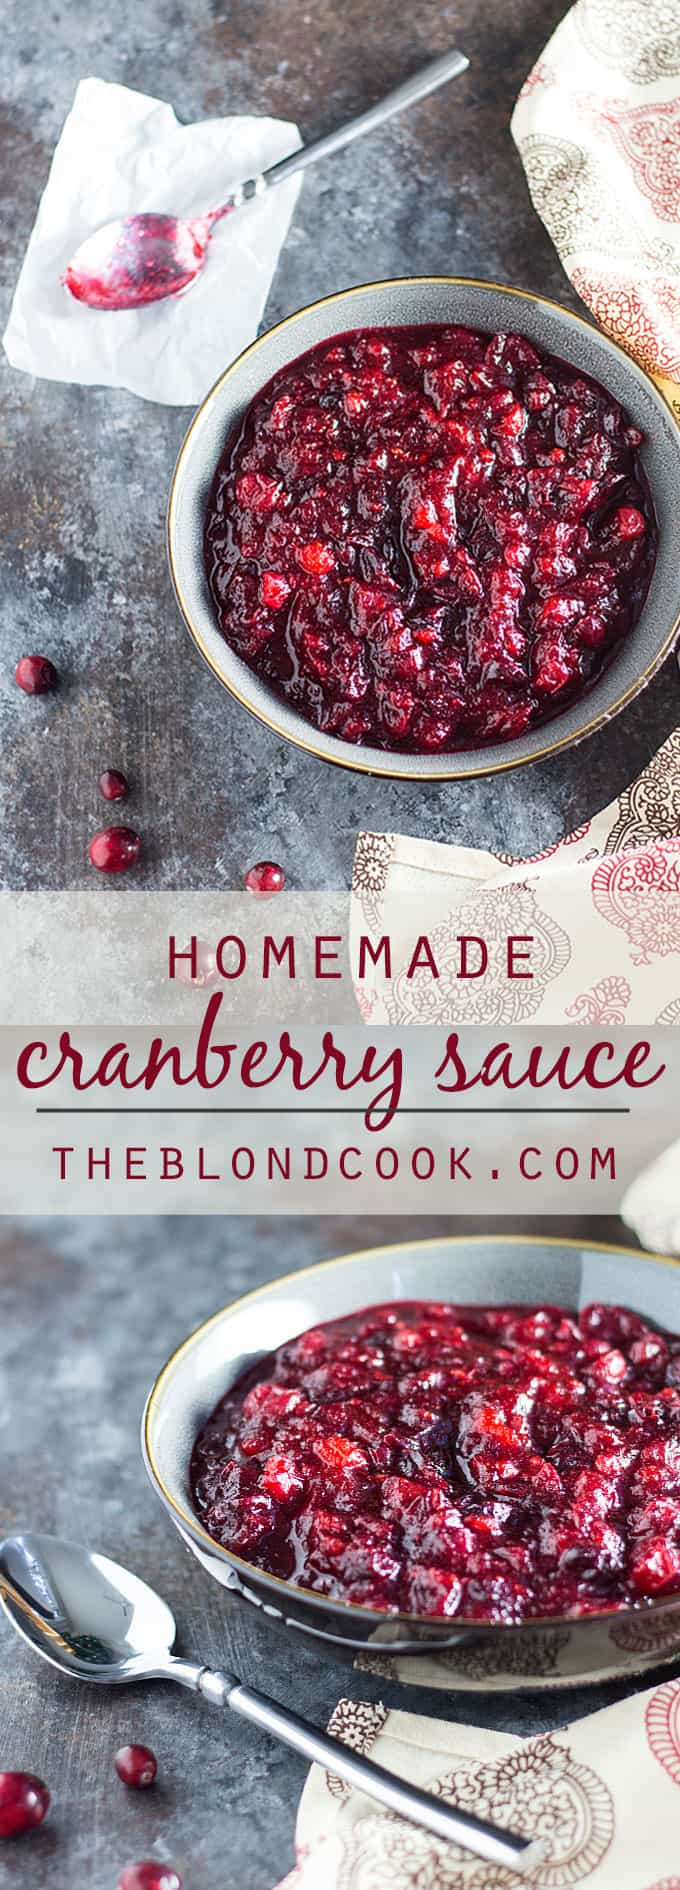 Homemade Cranberry Sauce - This homemade cranberry sauce recipe is so easy -- No need to ever open a can again!